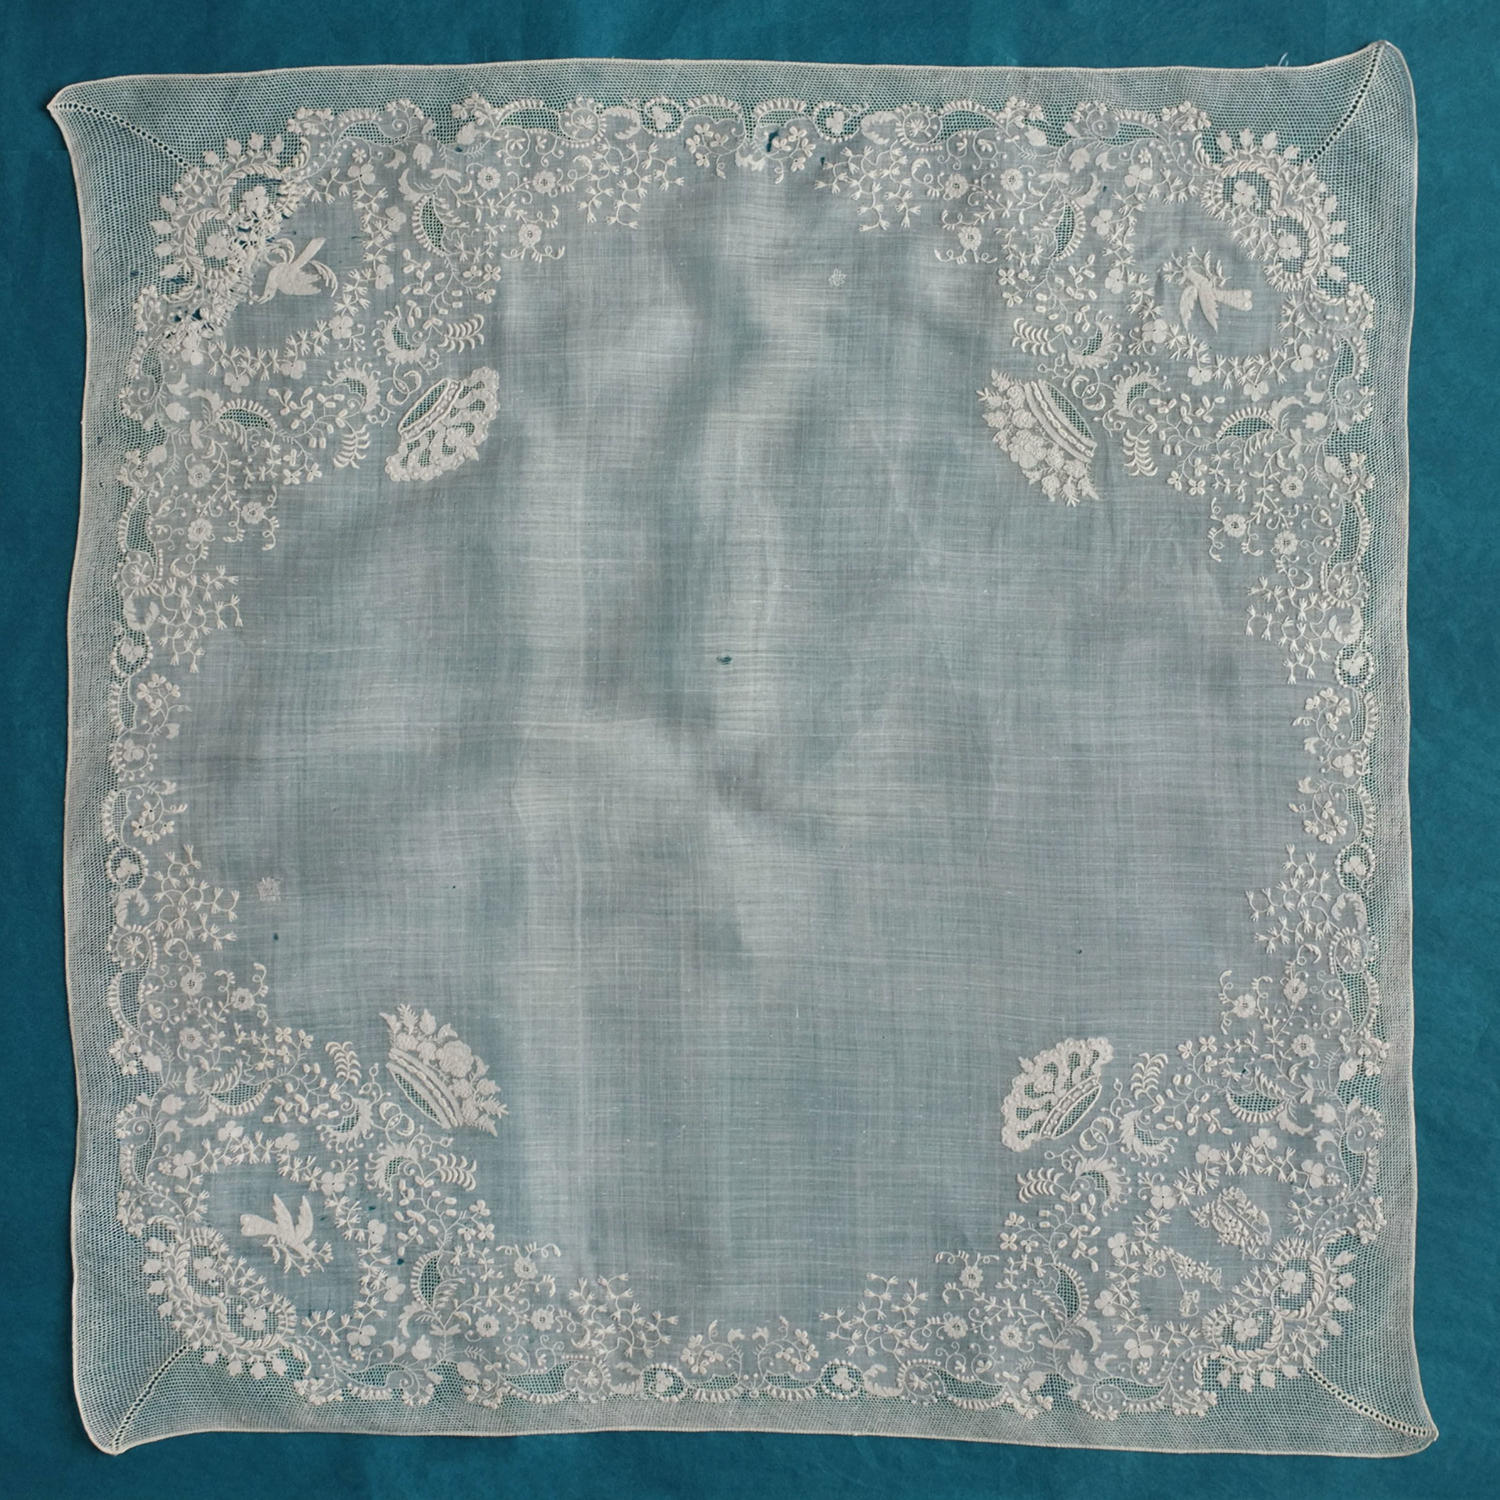 19th Century Whitework Handkerchief with Monogram, Birds and Crowns